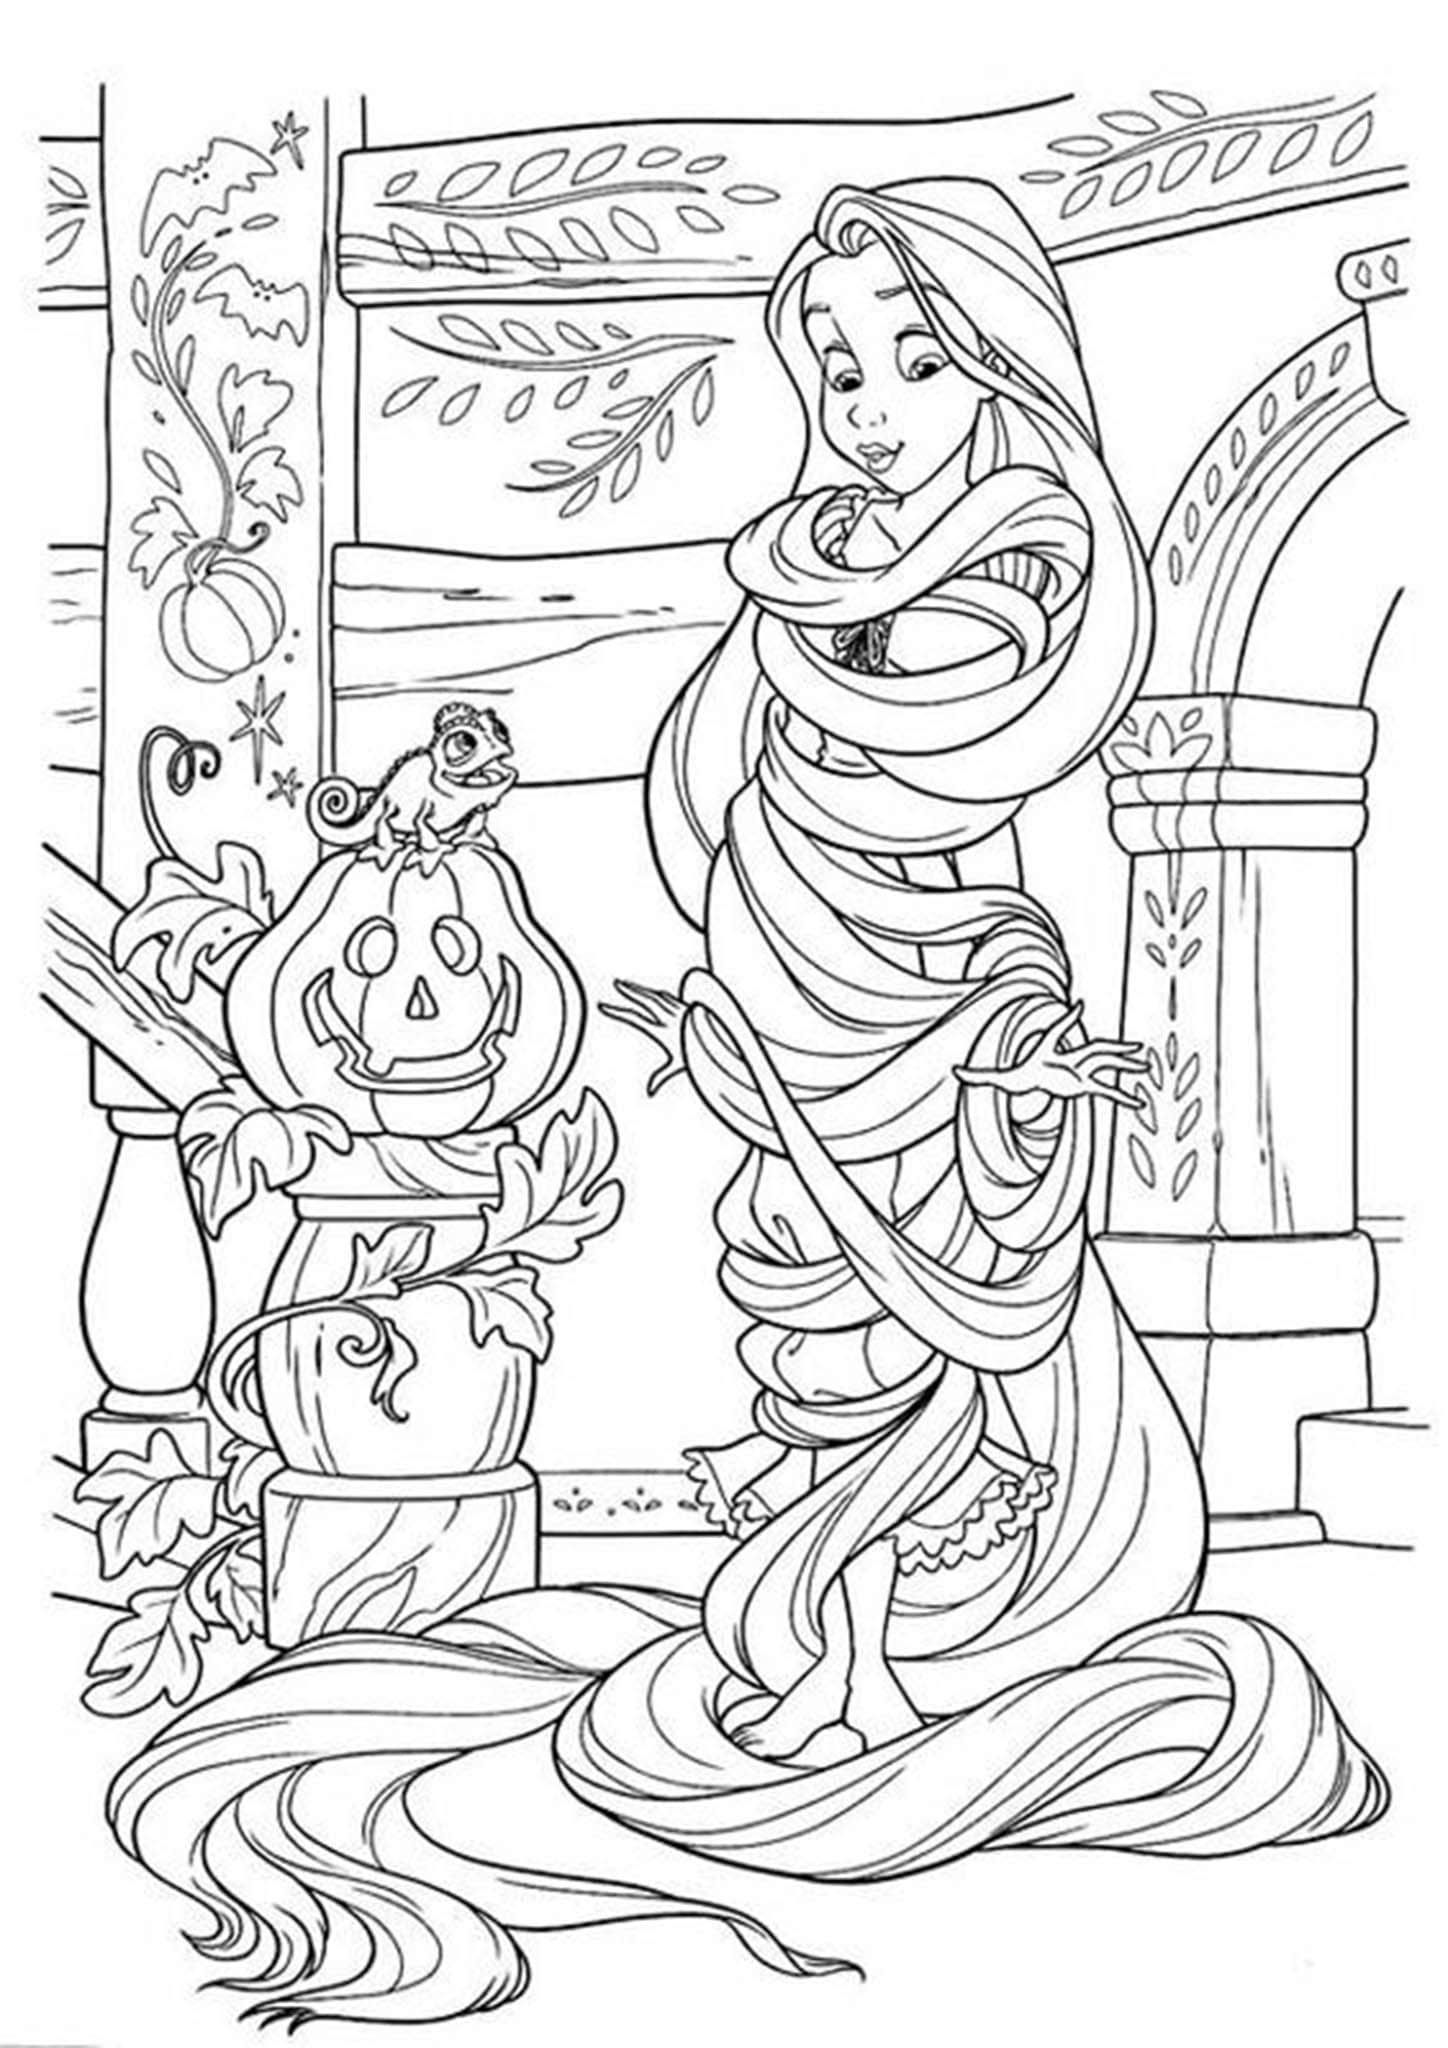 Free Easy To Print Tangled Coloring Pages Disney Coloring Pages Rapunzel Coloring Pages Tangled Coloring Pages